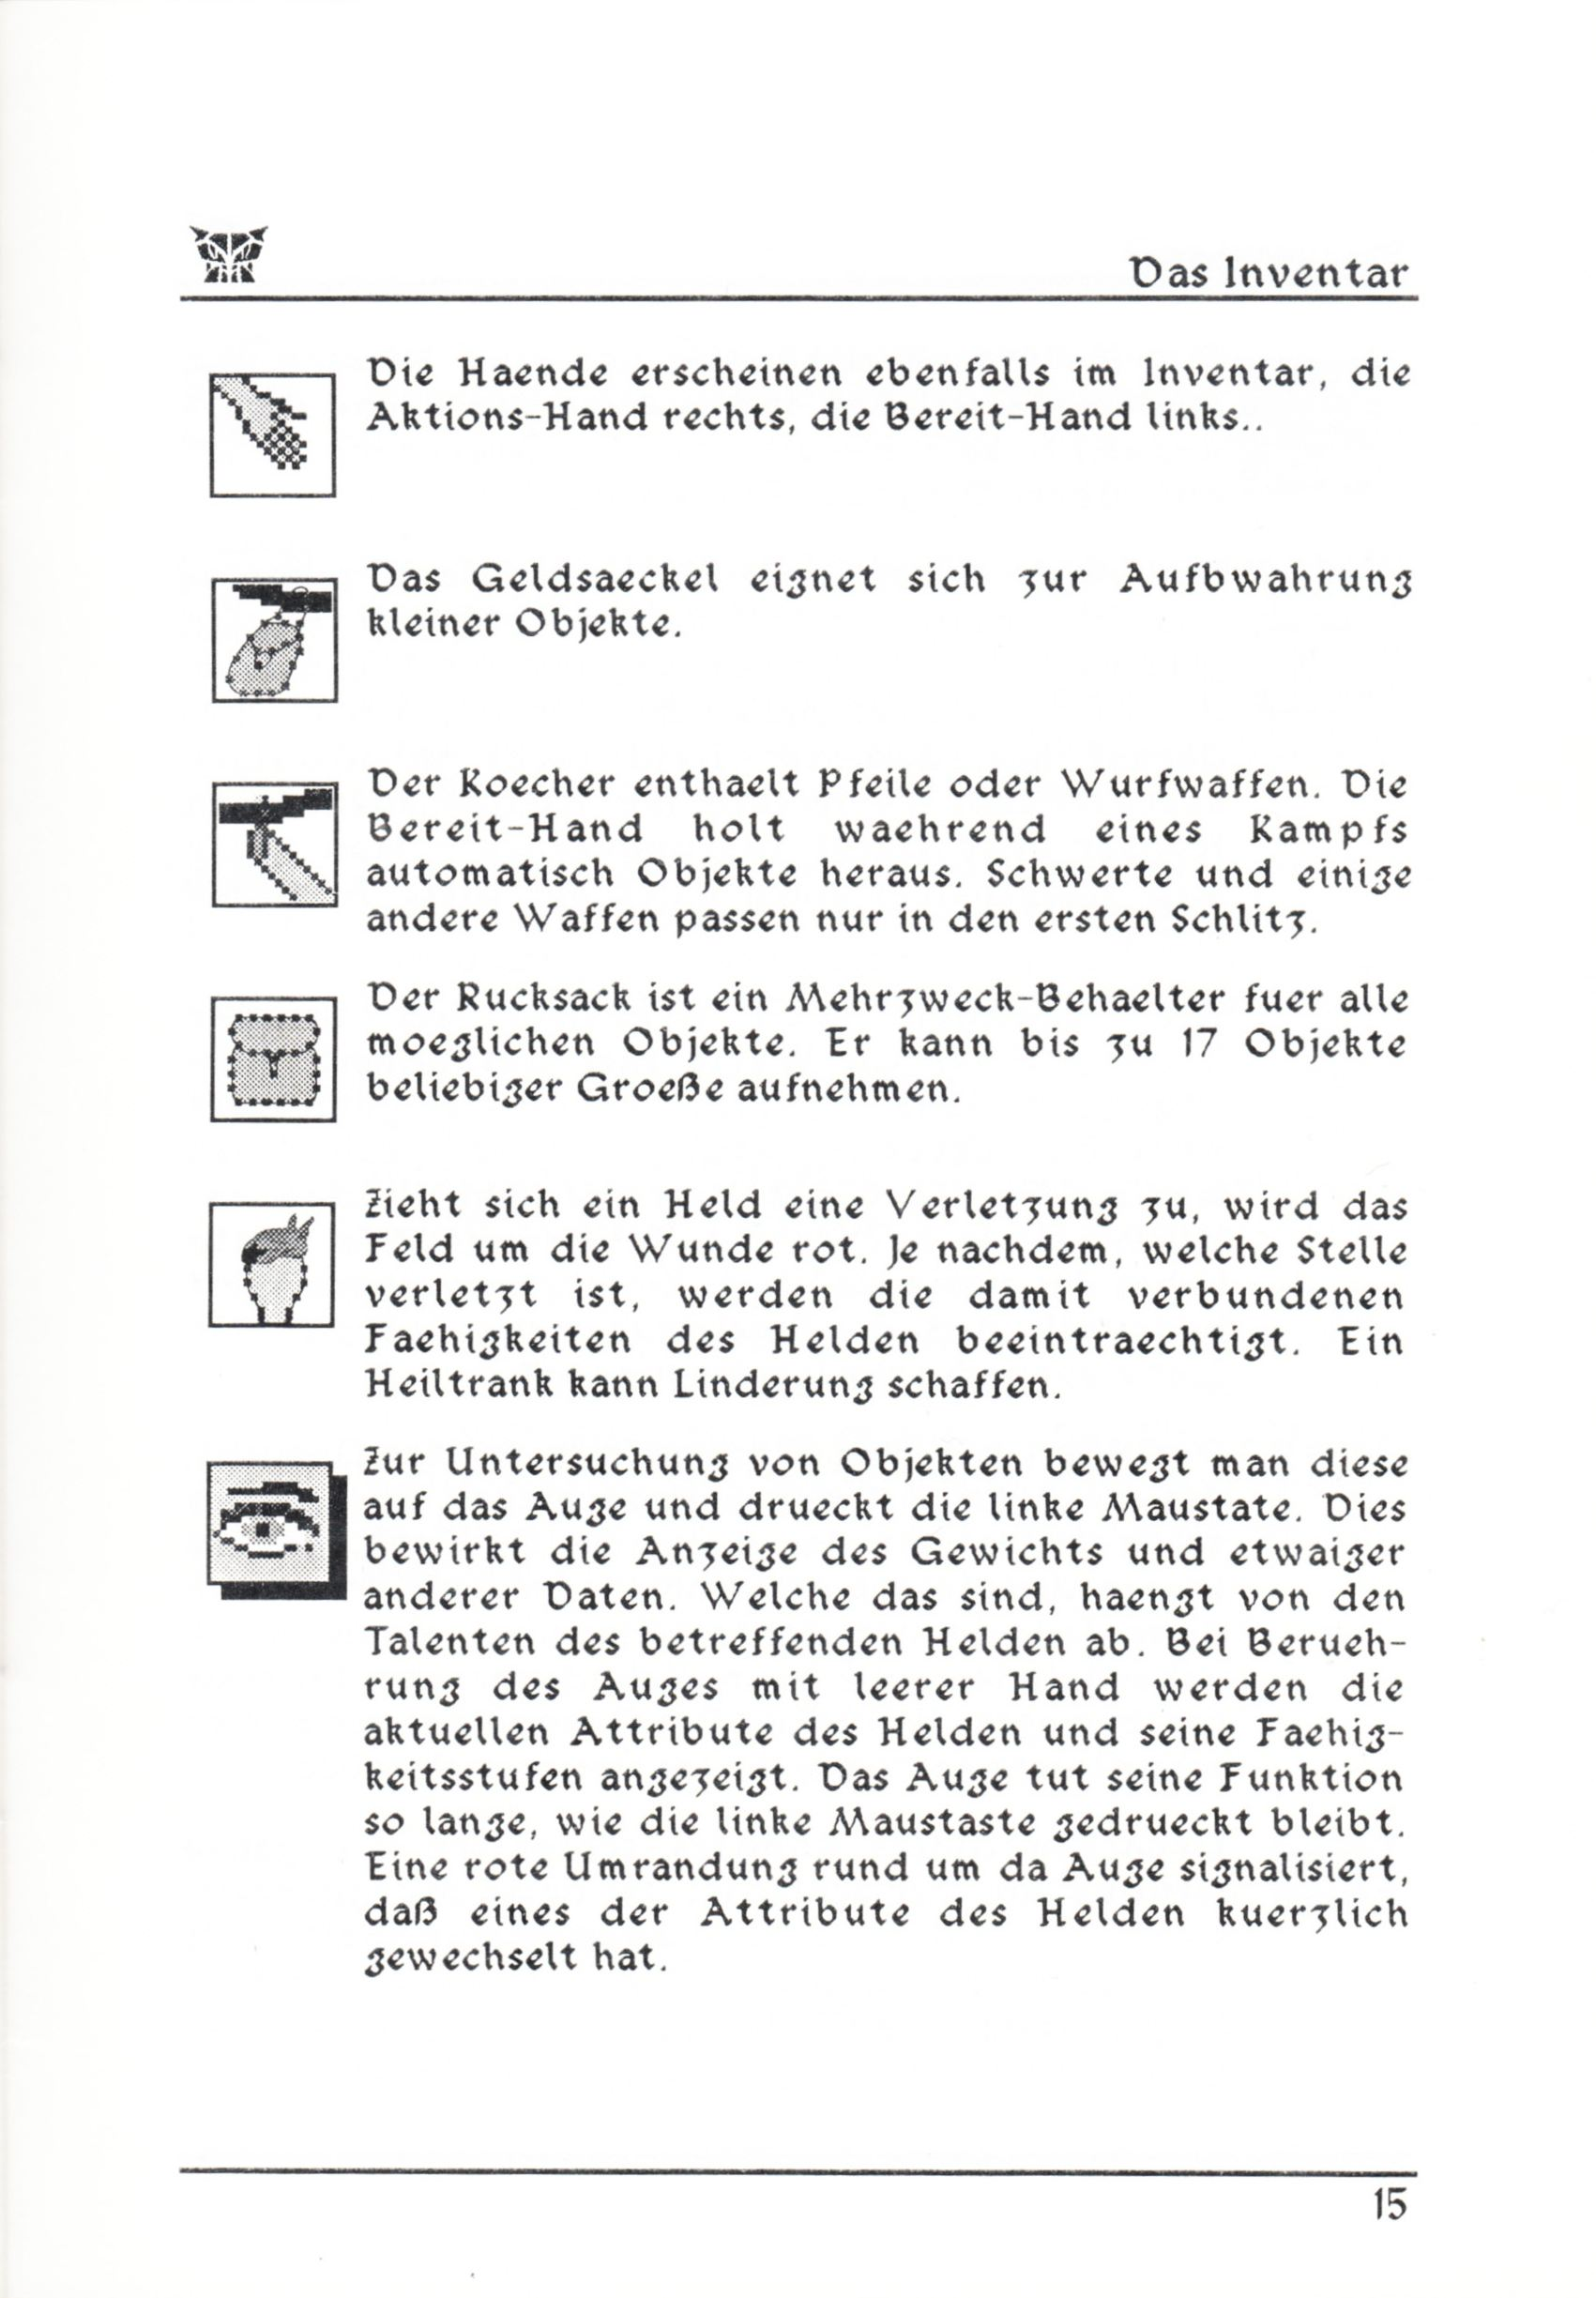 Game - Dungeon Master - DE - PC - Psygnosis - Manual - Page 041 - Scan